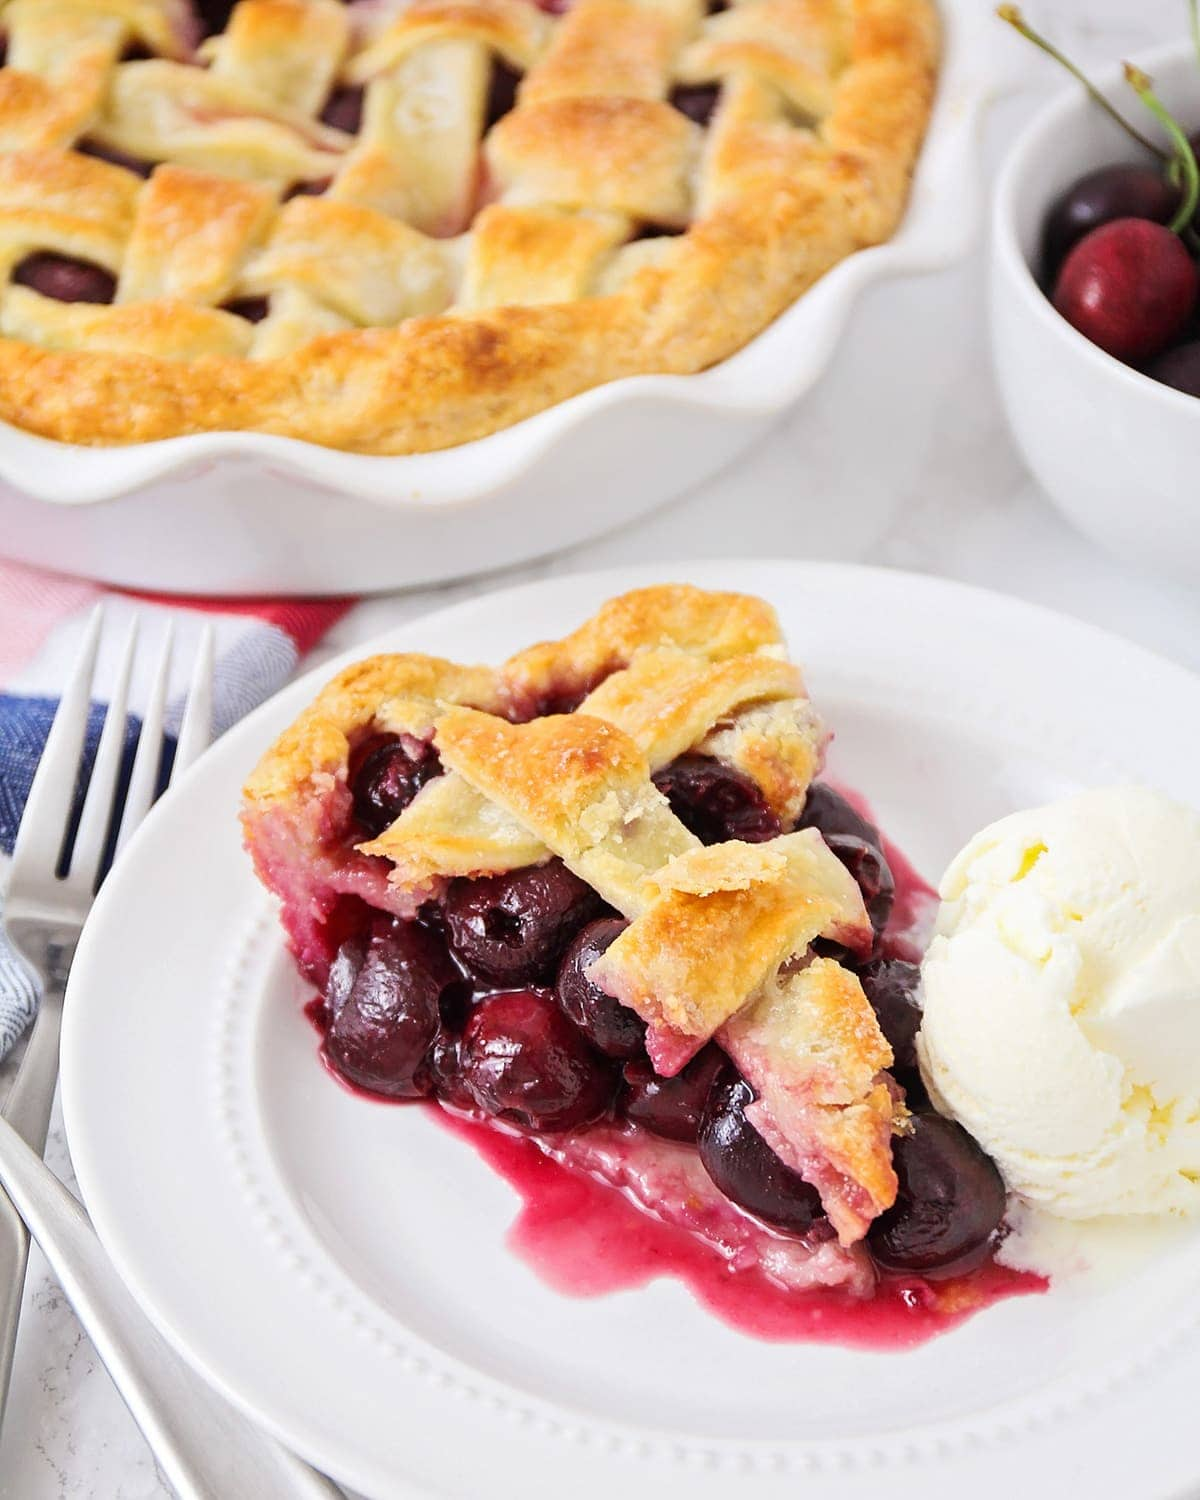 Cherry pie slice on plate with ice cream